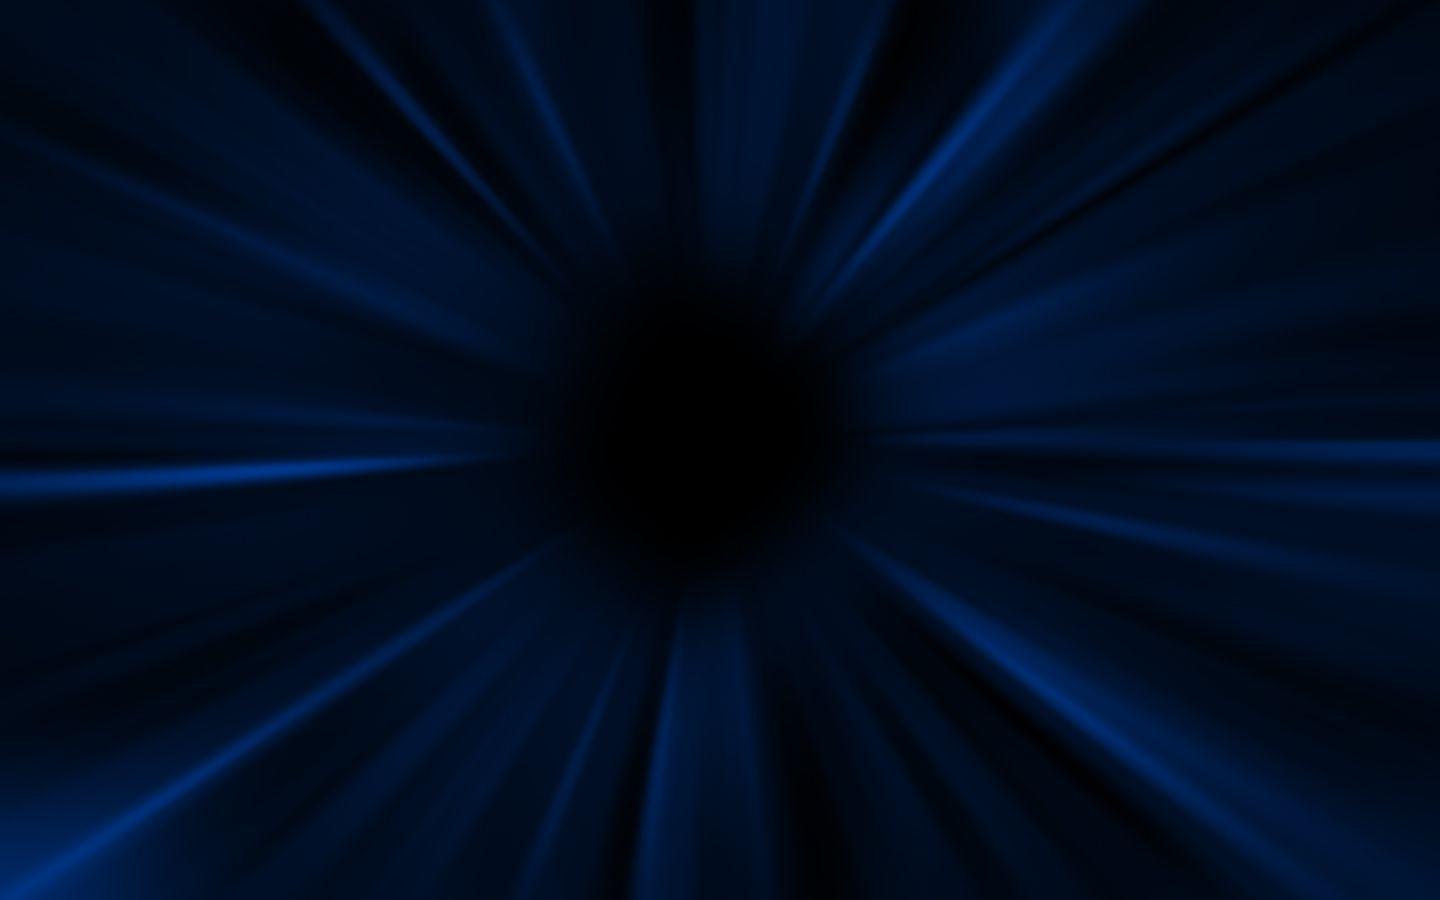 Navy Blue Background | HD Wallpapers Pulse | Color - Blues in 2019